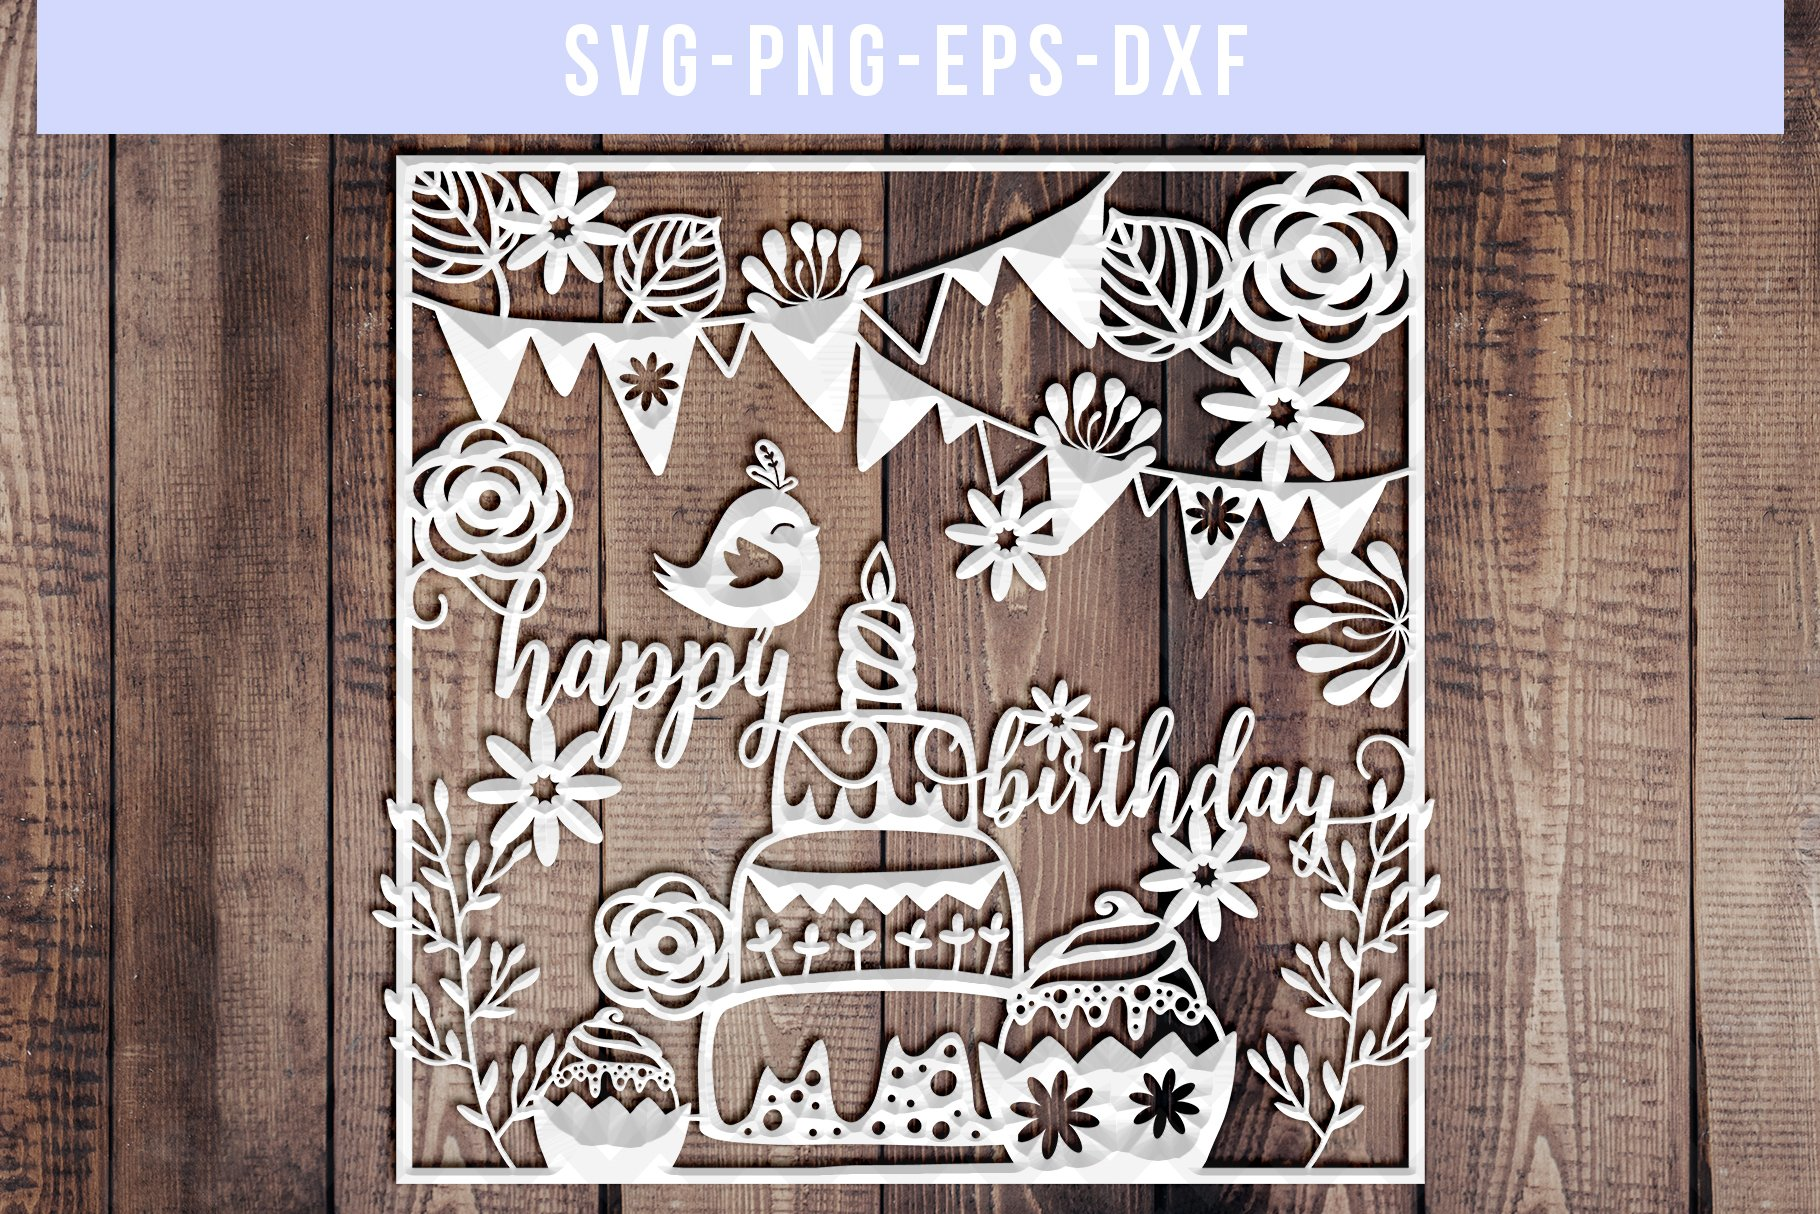 Happy Birthday Svg Cut File Papercut Template Dxf Eps Png 138141 Paper Cutting Design Bundles